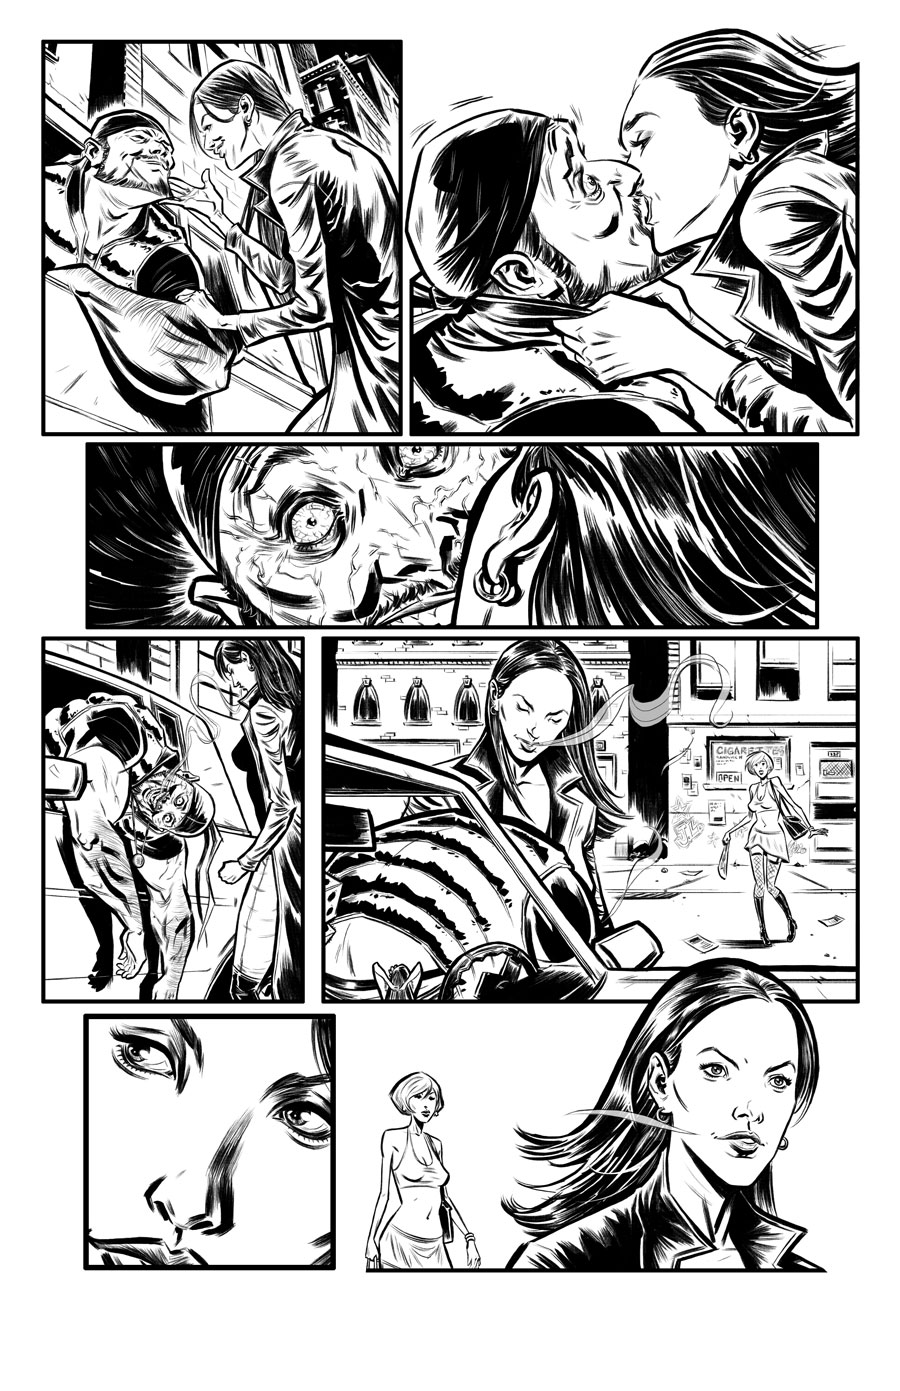 Lost Girl Prologue  Writer:  Navid Khavari  Art:  Tigh Walker BEDLAM INK, 2010